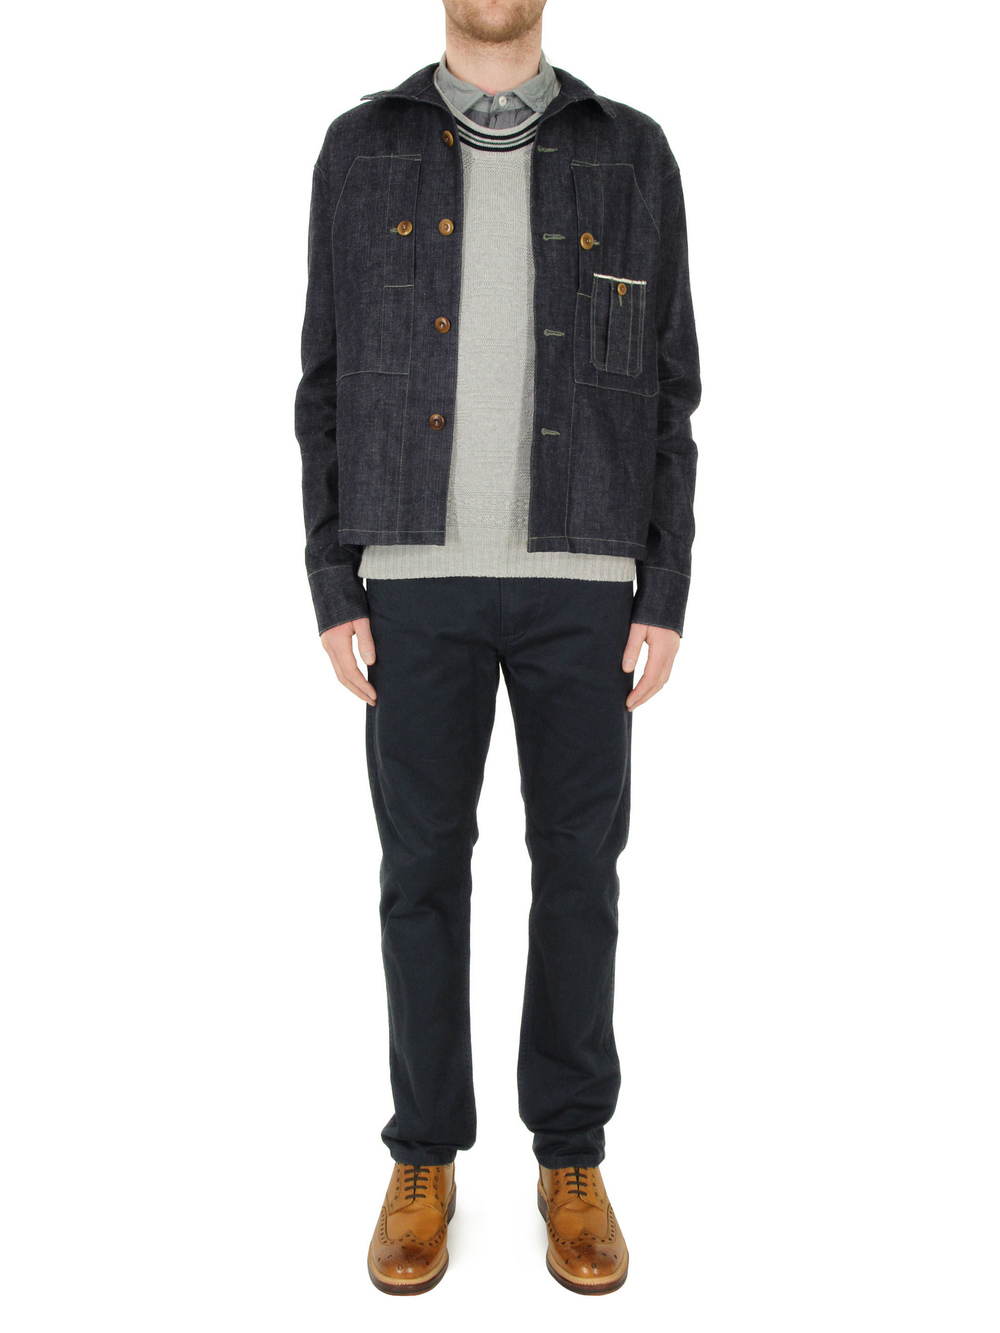 Nigel-Cabourn-Chest-Pocket-Indigo-Shirt-Jacket.jpg